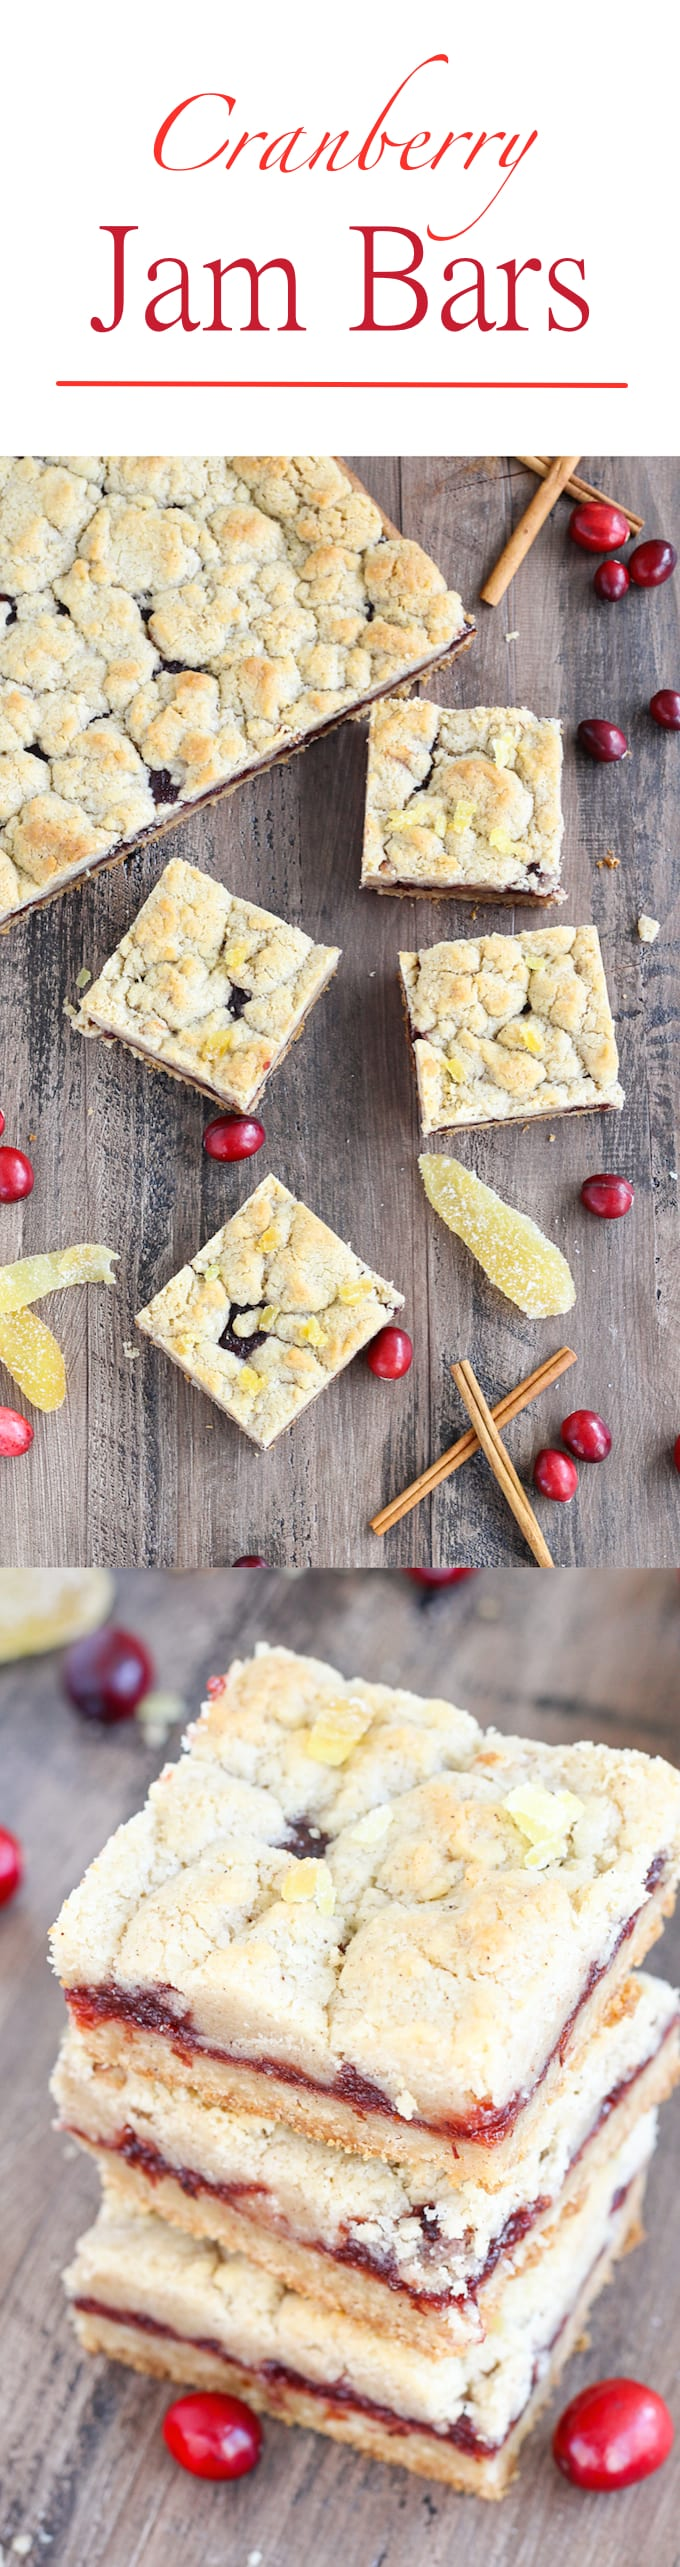 There are few homemade desserts easier than jam bars and these Cranberry Cinnamon Jam Bars are not only easy they pack serious holiday flavor! The cinnamon streusel doubles as both the top and bottom crusts with a gooey, spiced cranberry filling in between.